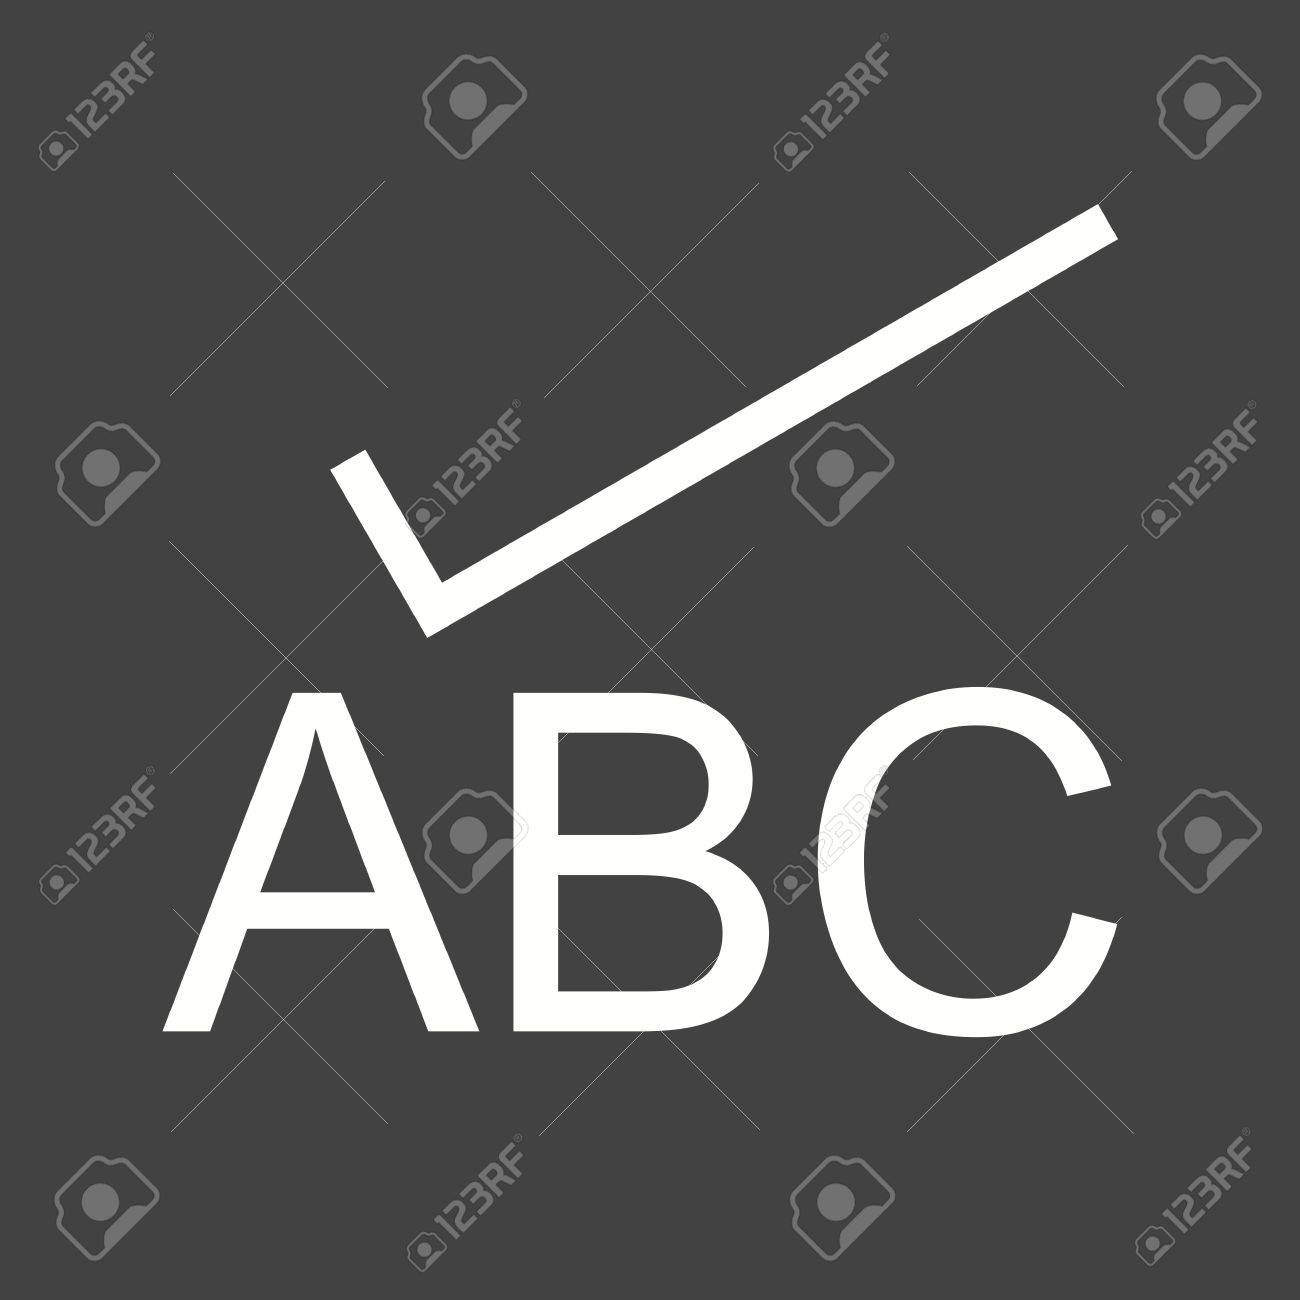 Check, spell, spelling icon vector image Can also be used for